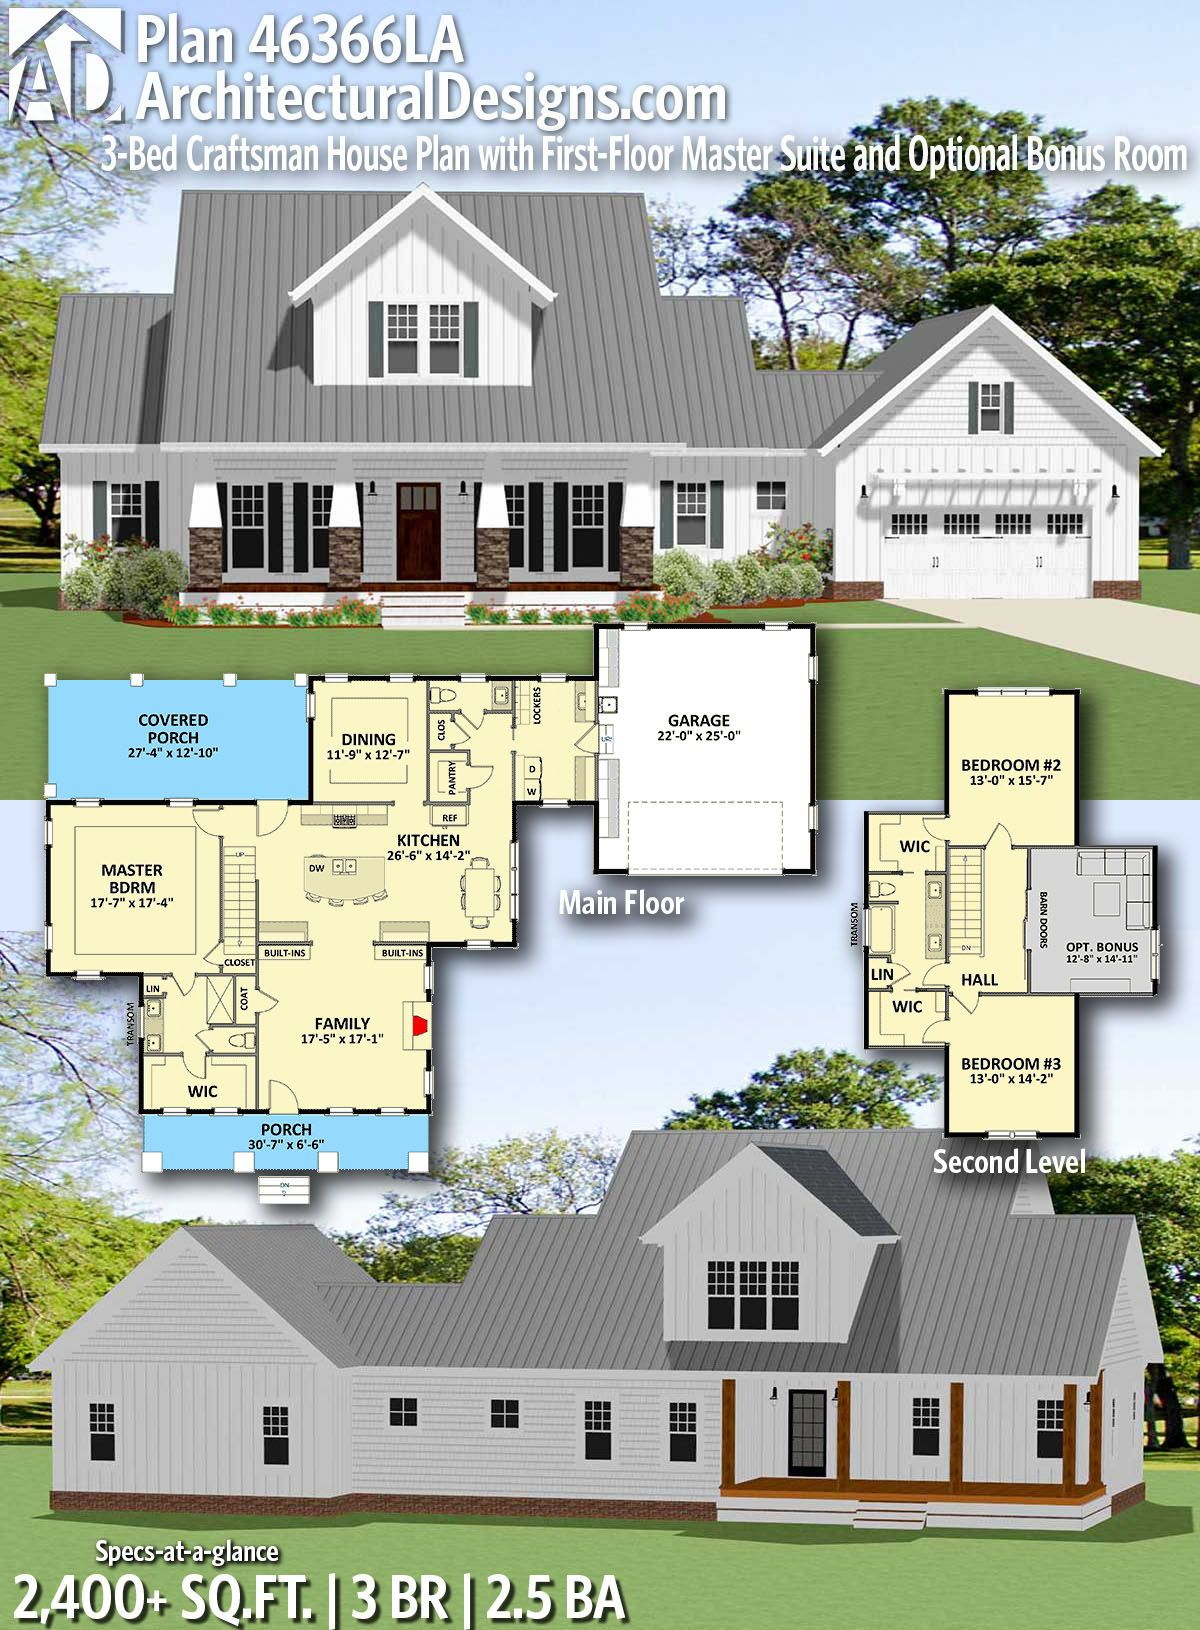 Plan 46366la 3 Bed Craftsman House Plan With First Floor Master Suite And Optional Bonus Room Farmhouse Plans Dream House Plans House Plans